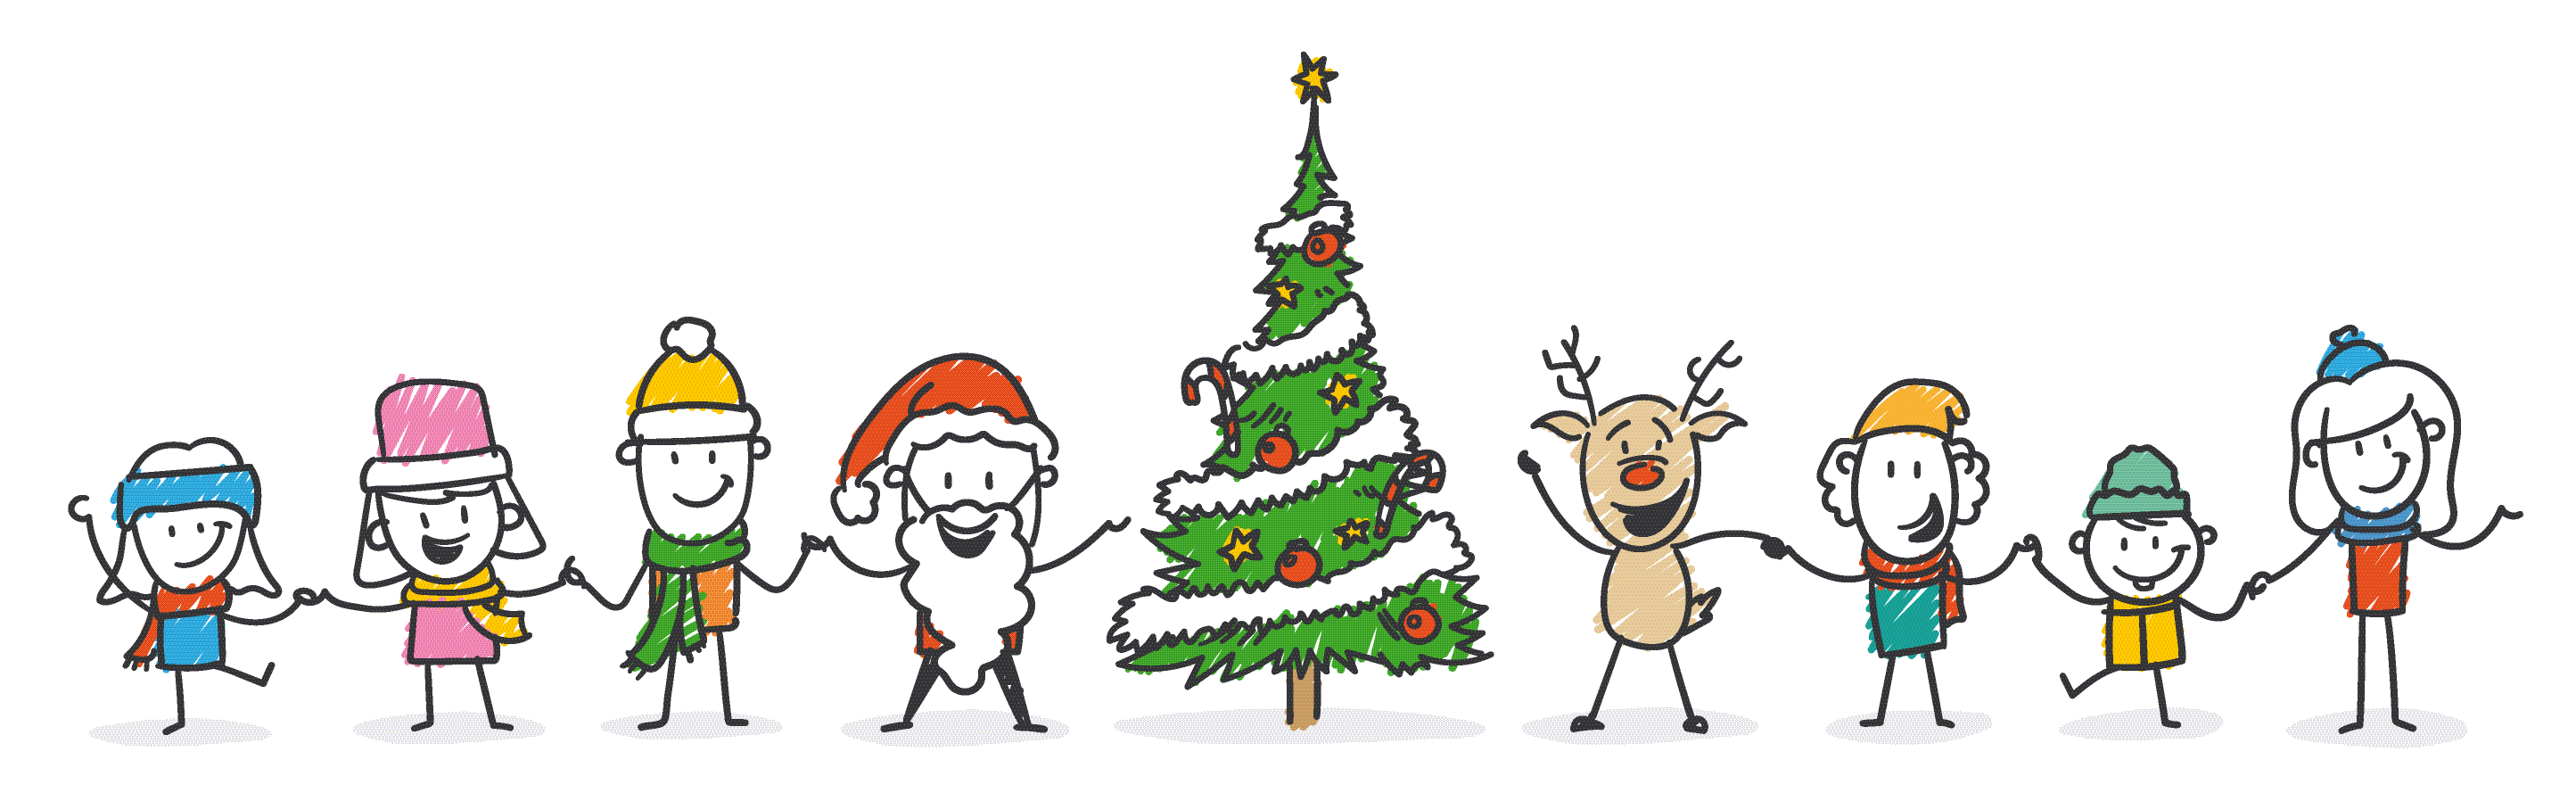 Talk to Your Family About Estate Planning Over the Holidays - XMas Tree